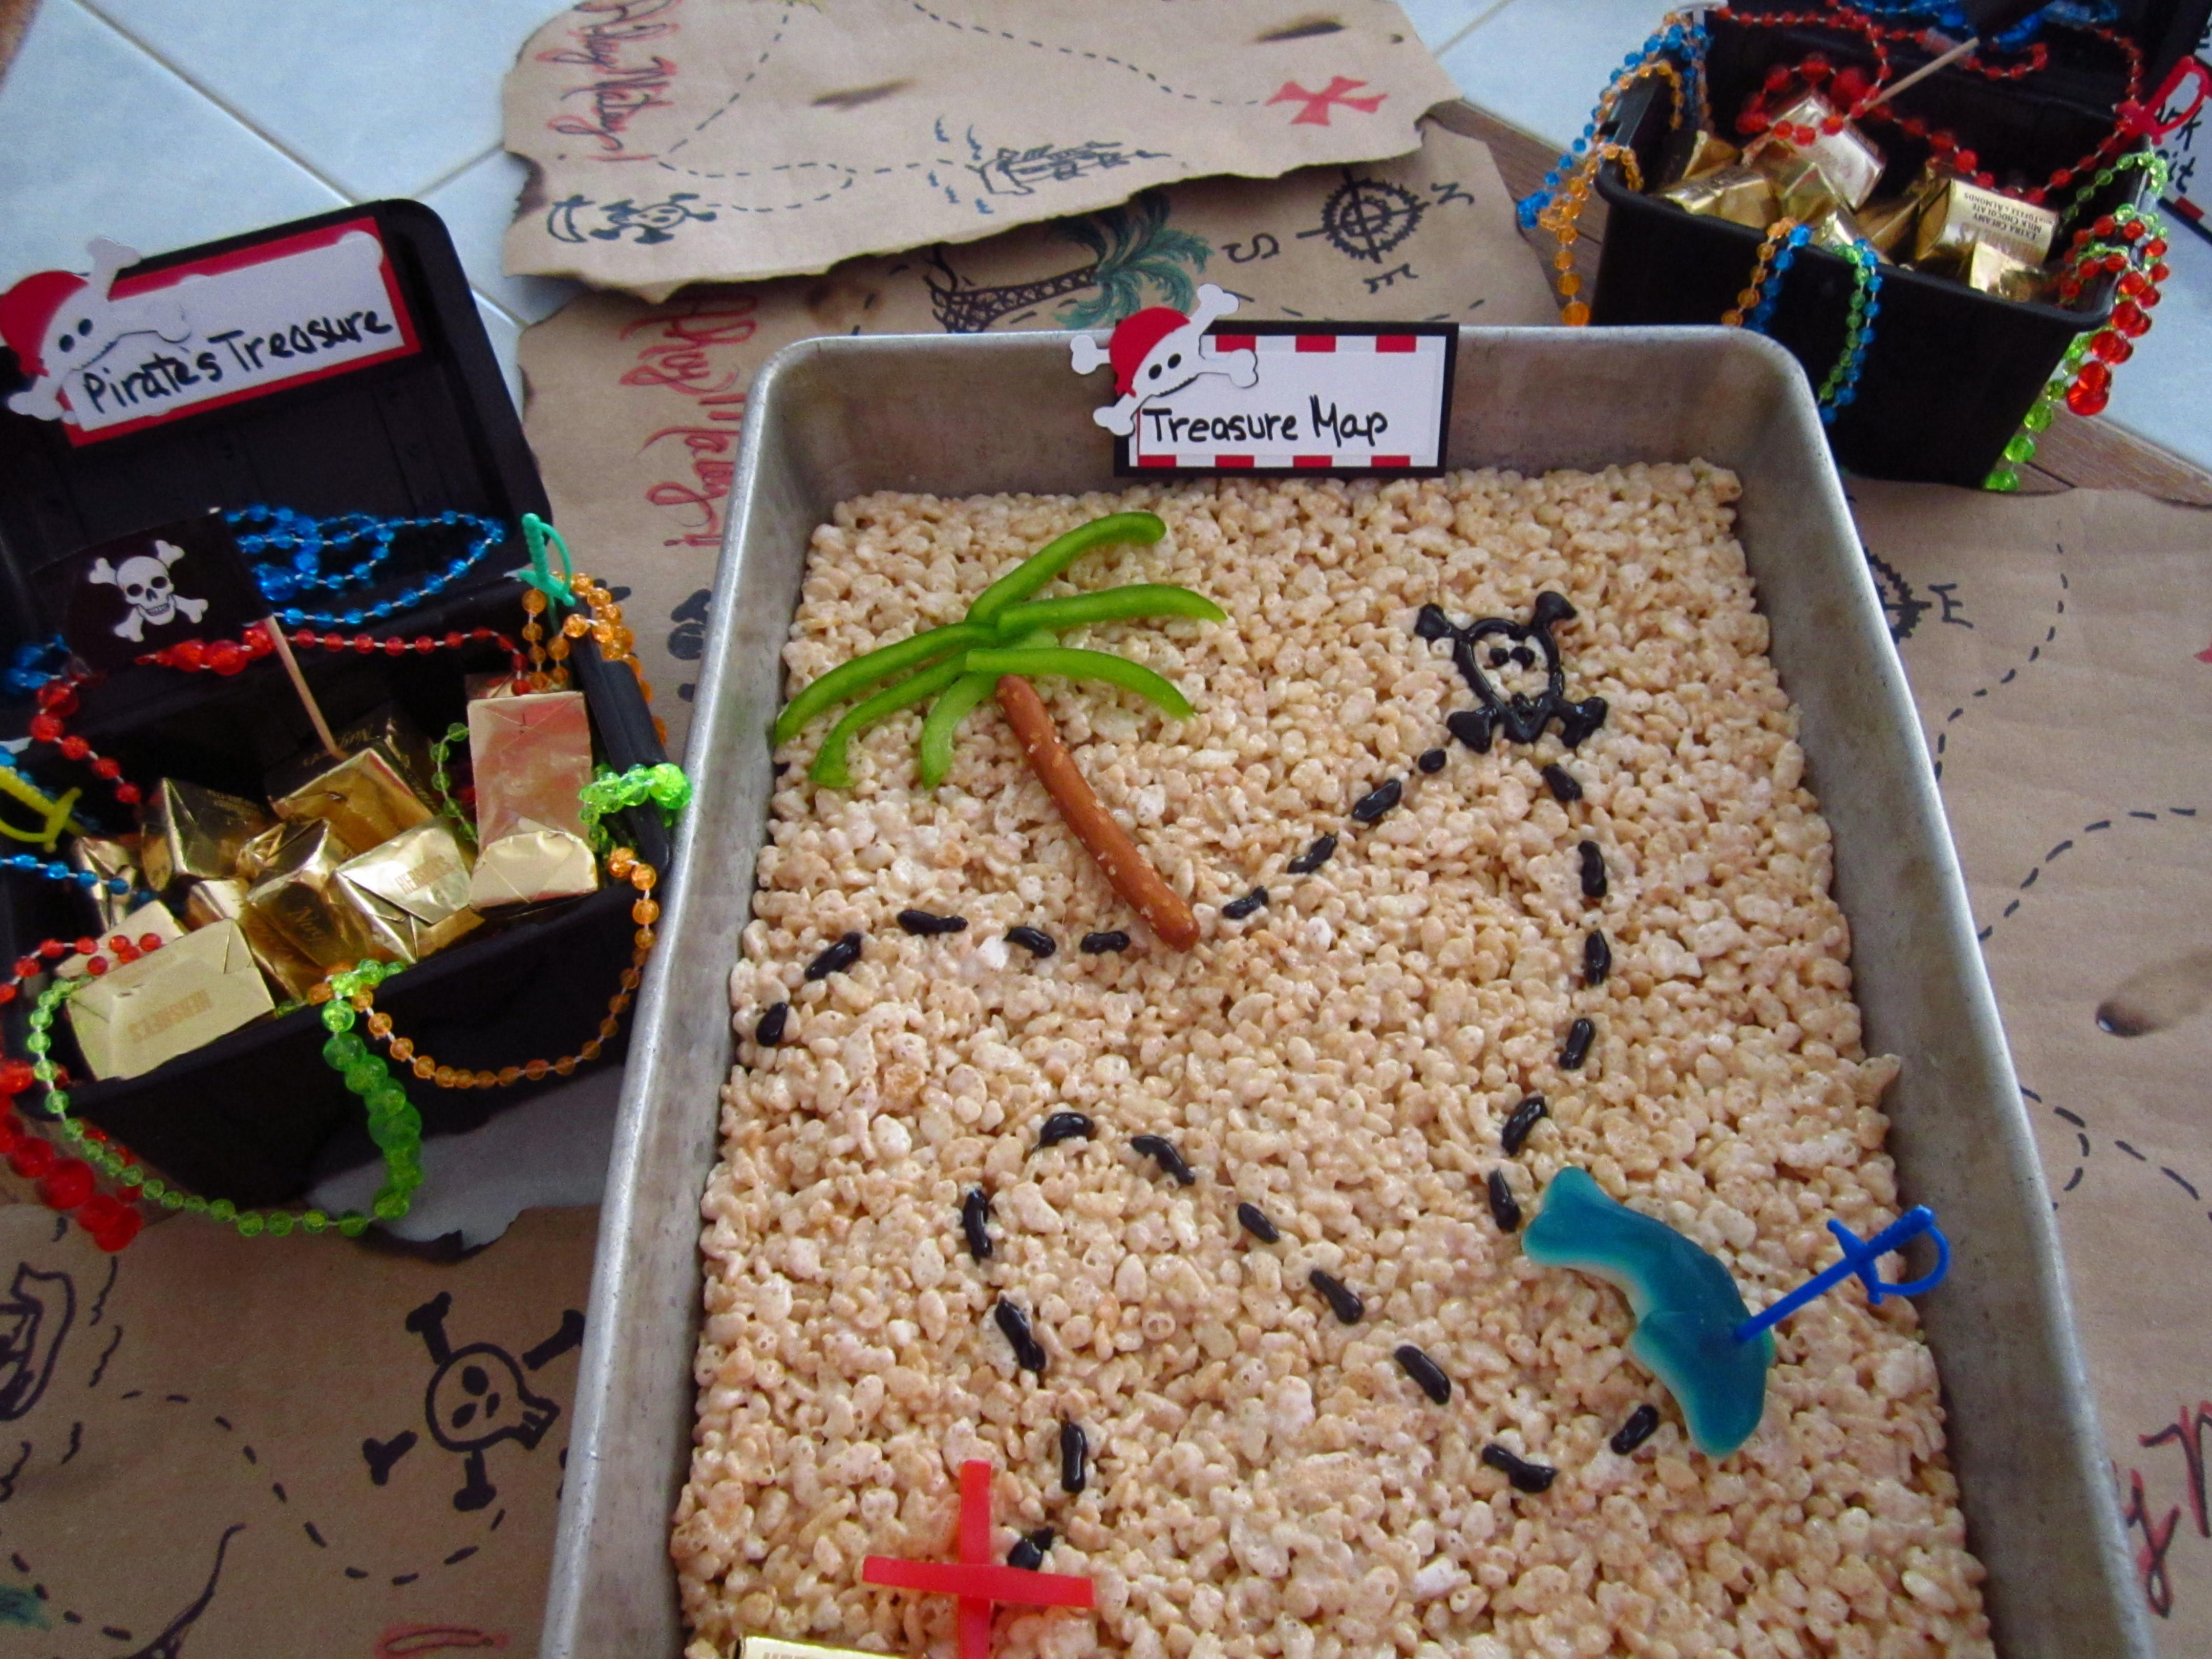 Pirate Treasure Map Rice Crispies And Candy Filled